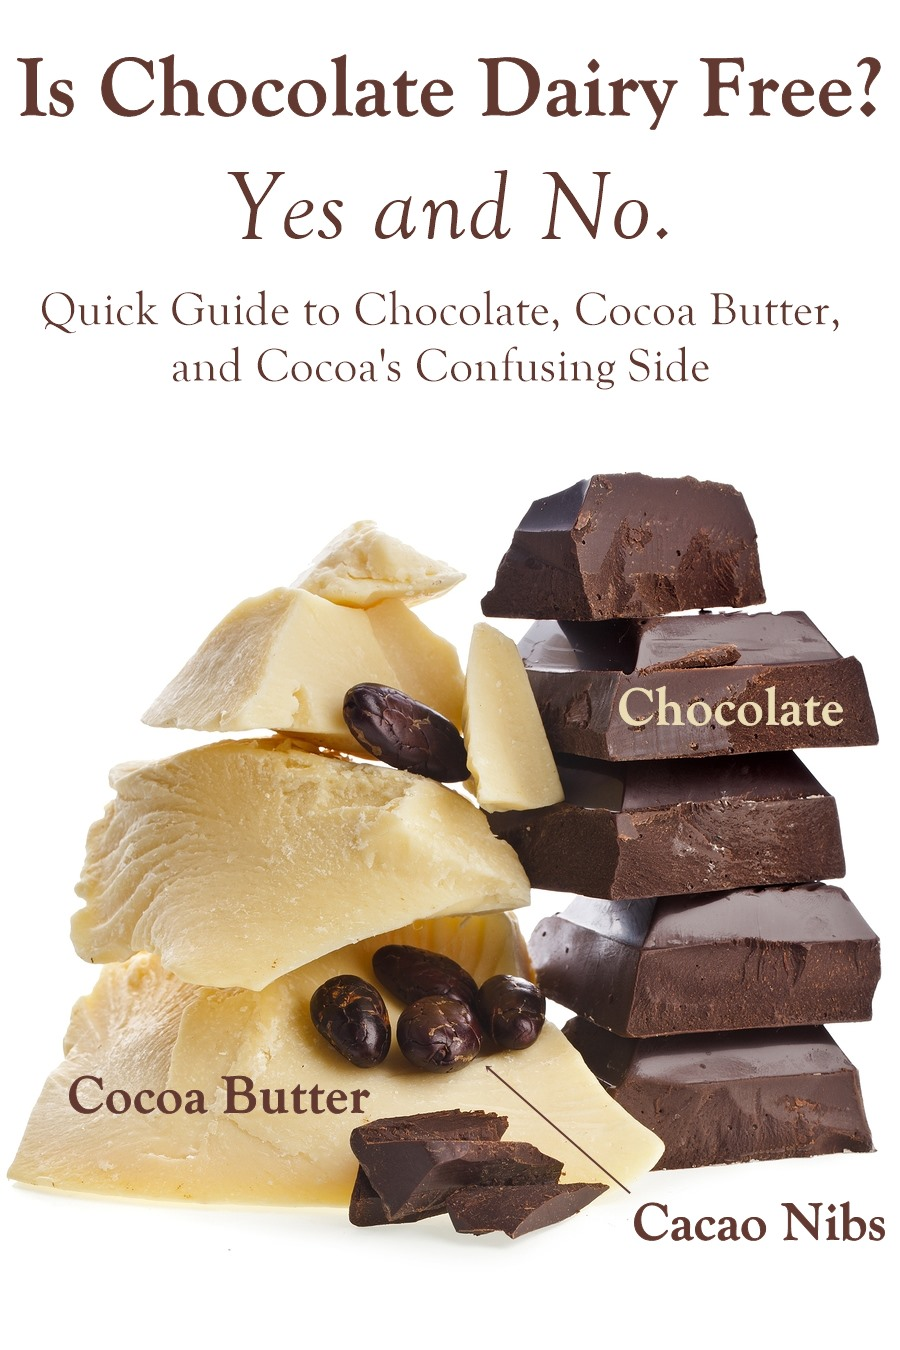 Chocolate is Dairy-Free - Understanding the Ingredients and why so many chocolate products contain dairy.